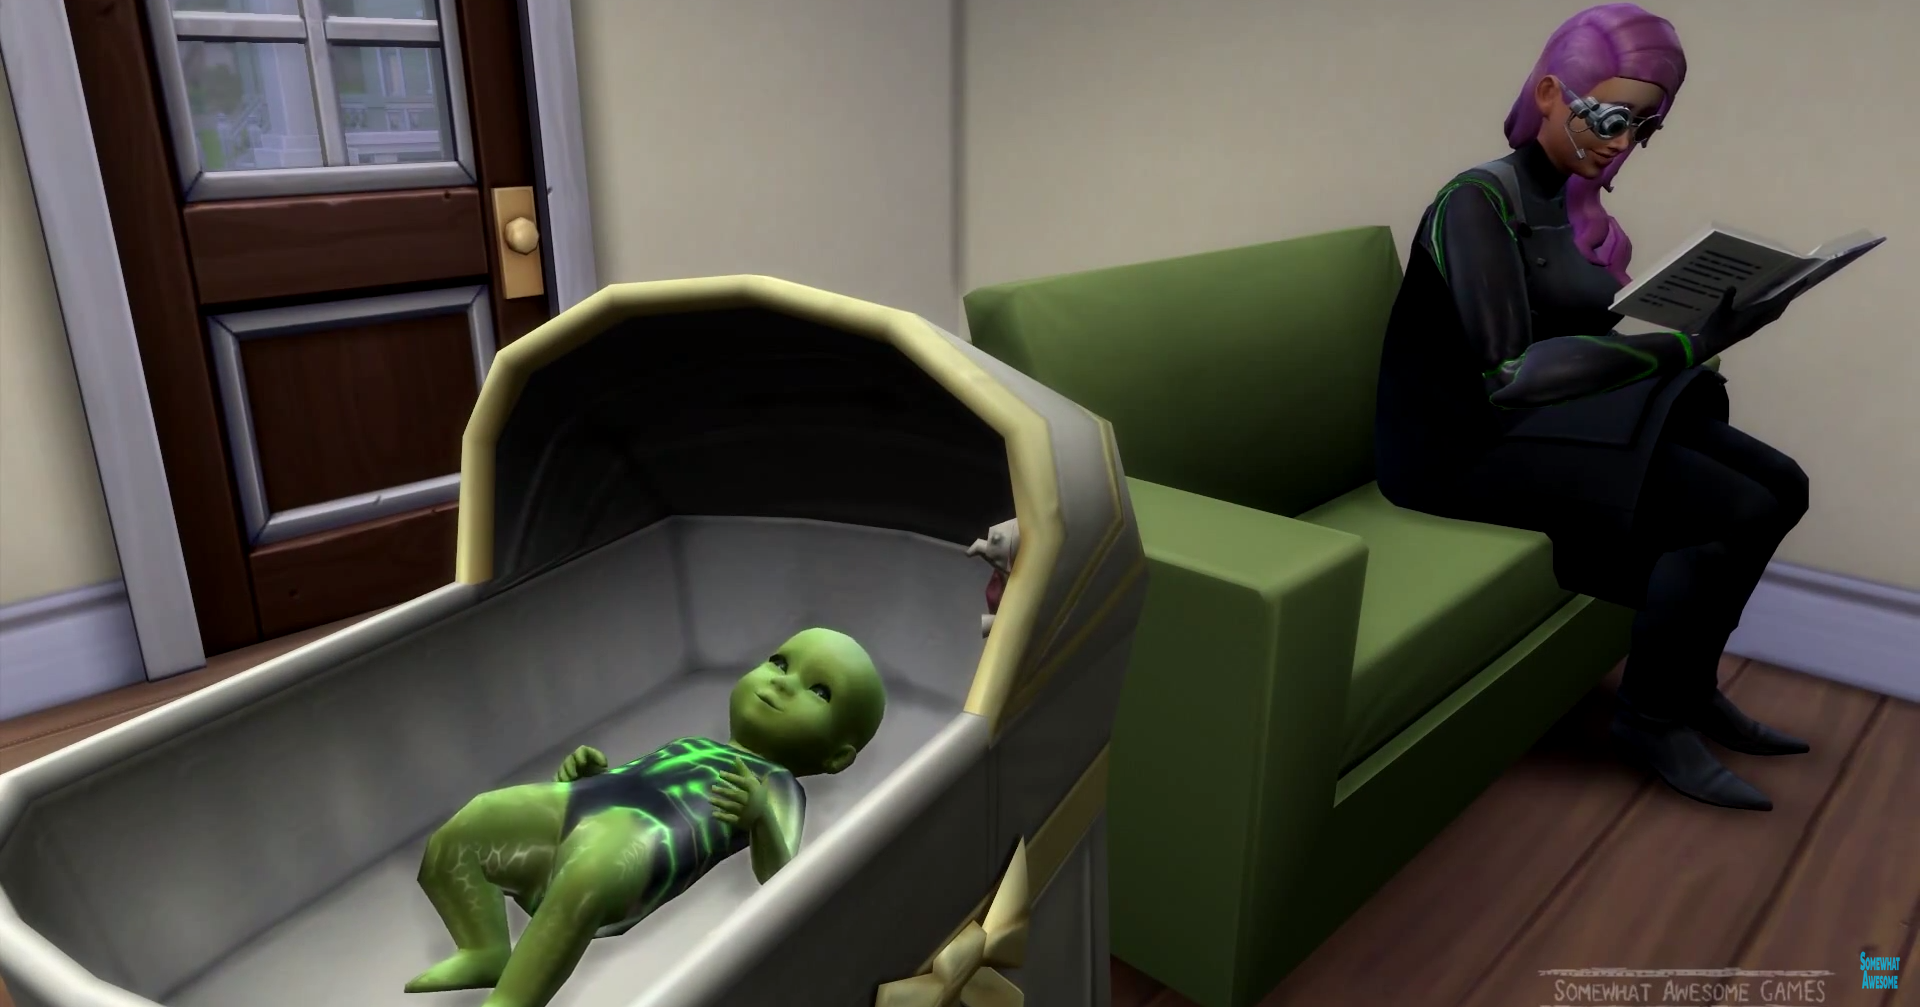 How To Get The Secret Alien Stuff In The New Sims 4 Expansion Pack